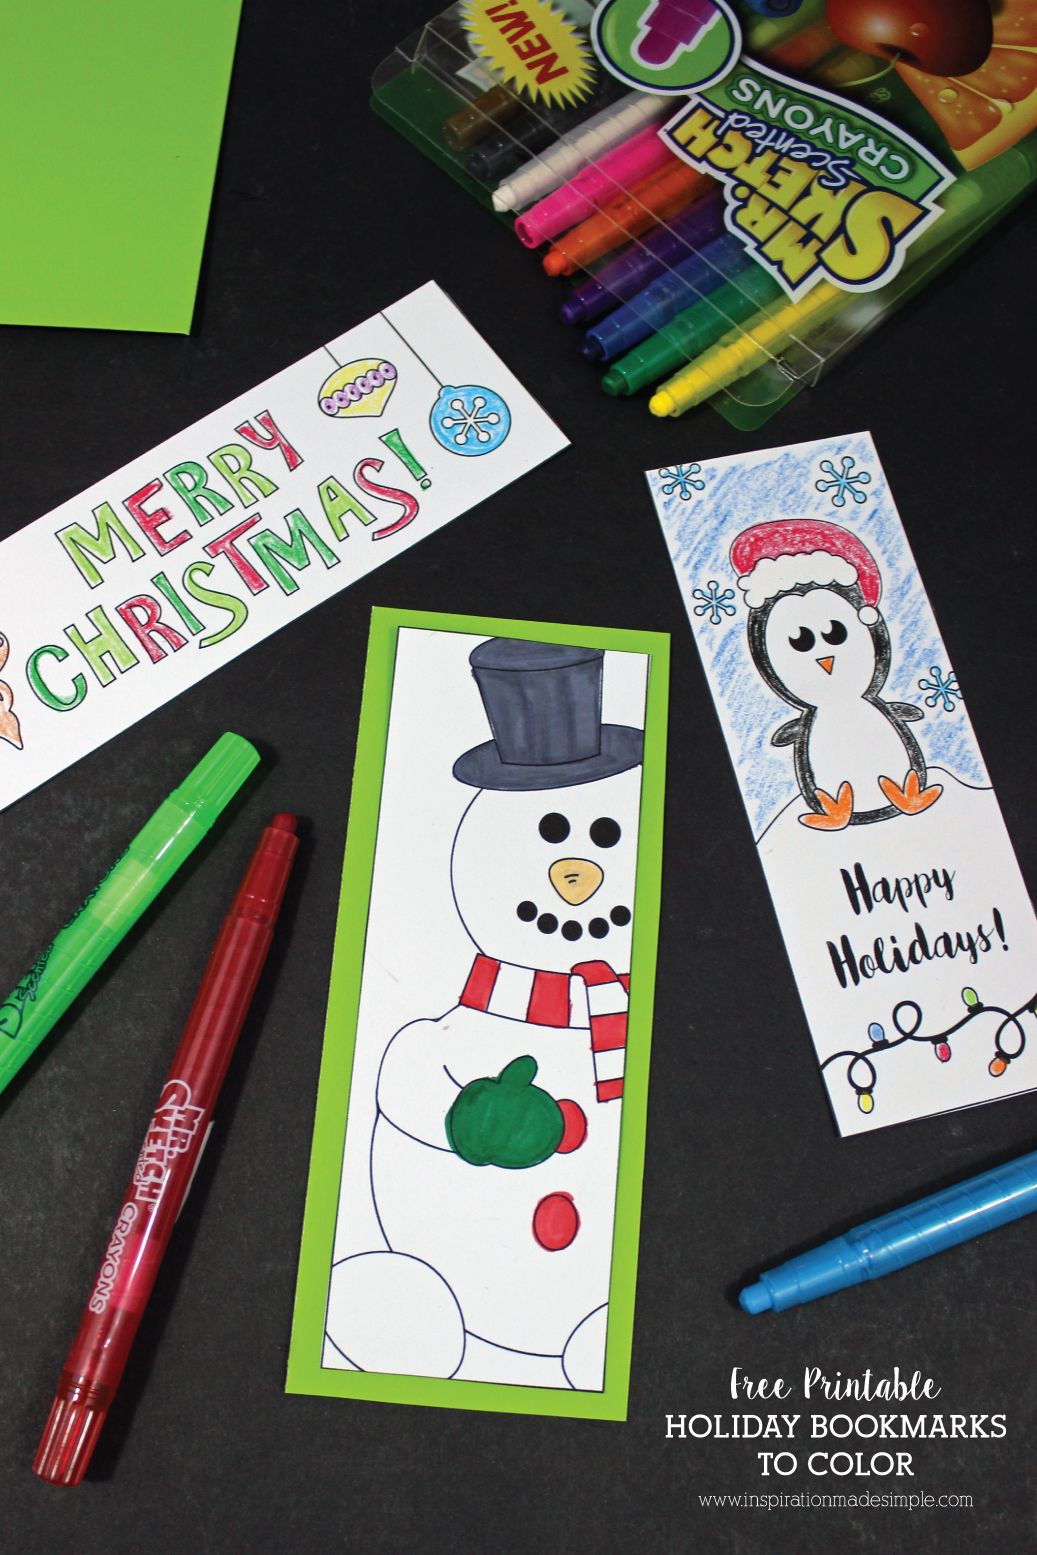 Printable Holiday Bookmarks To Color | Kid Blogger Network - Free Printable Christmas Bookmarks To Color